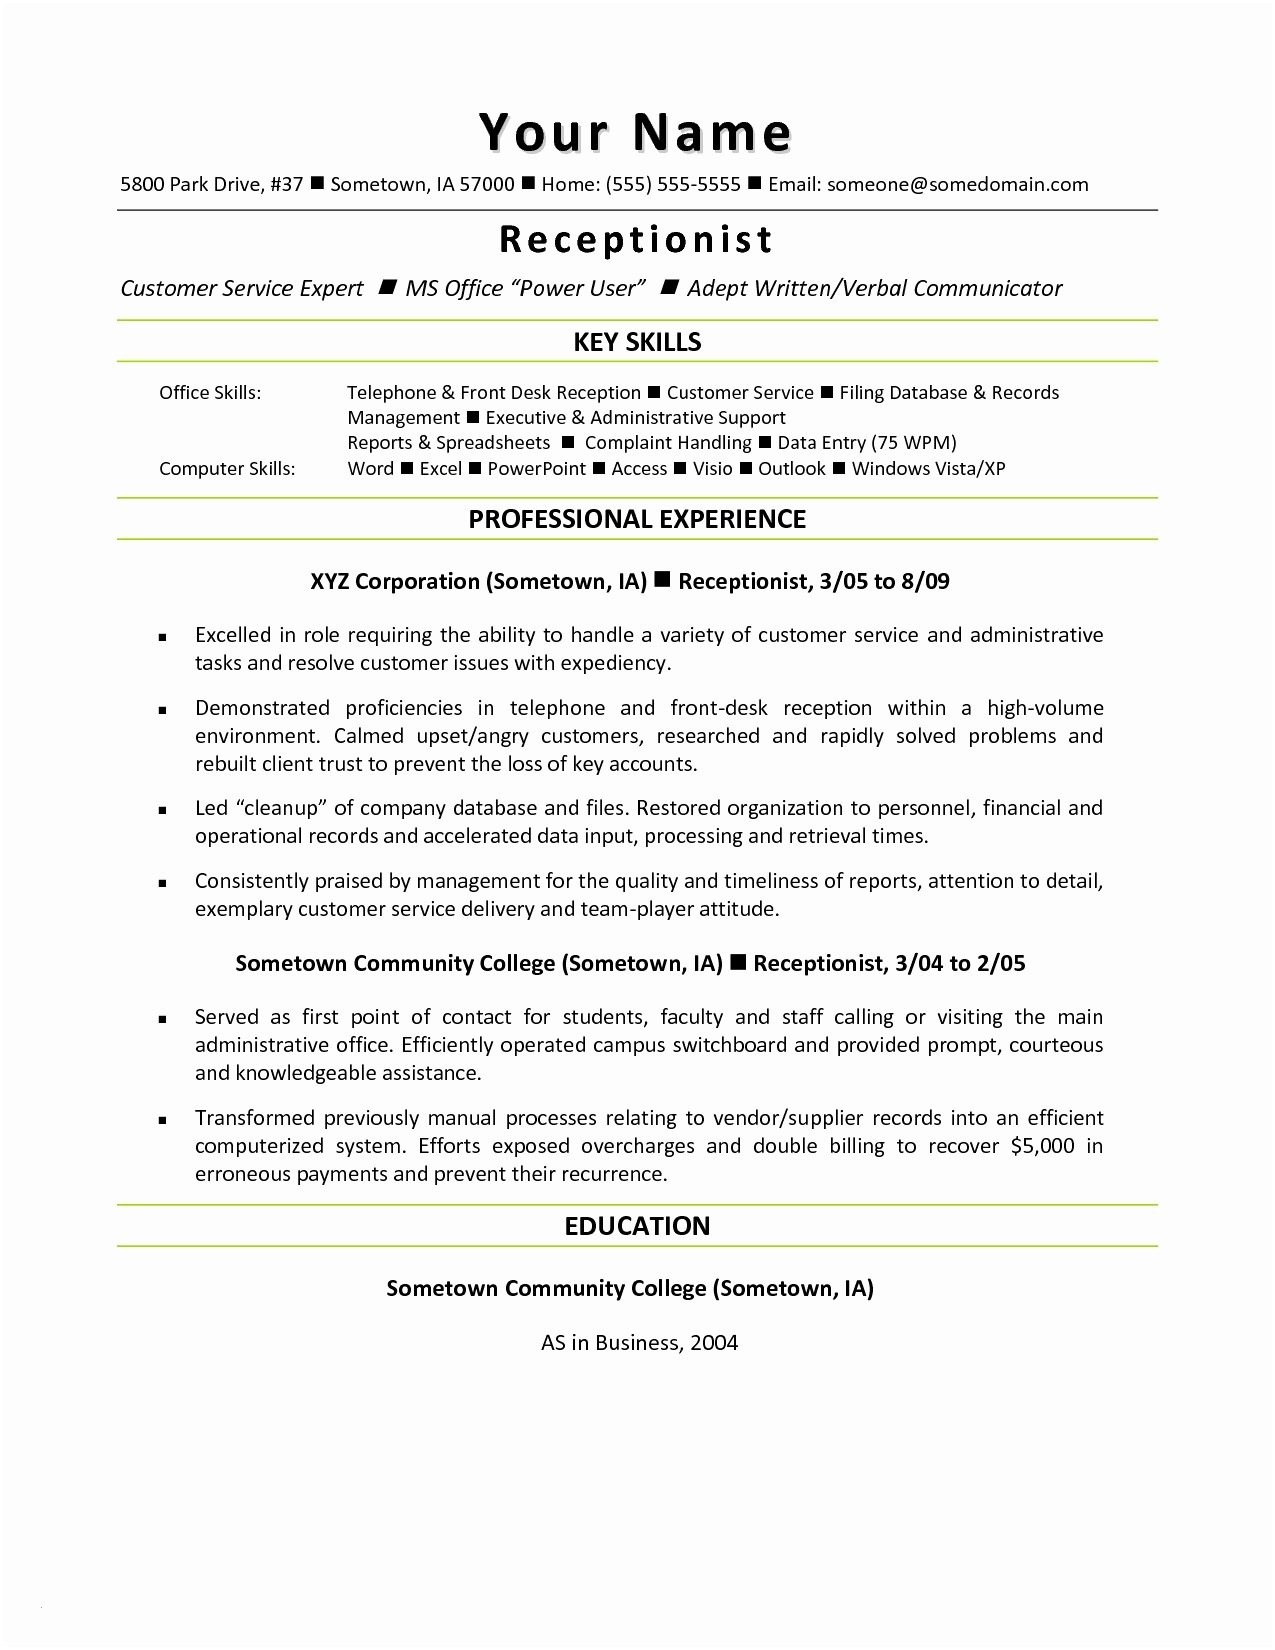 Financial Advisor Resume Template - Consulting Resume Template Awesome Resume Mail format Sample Fresh